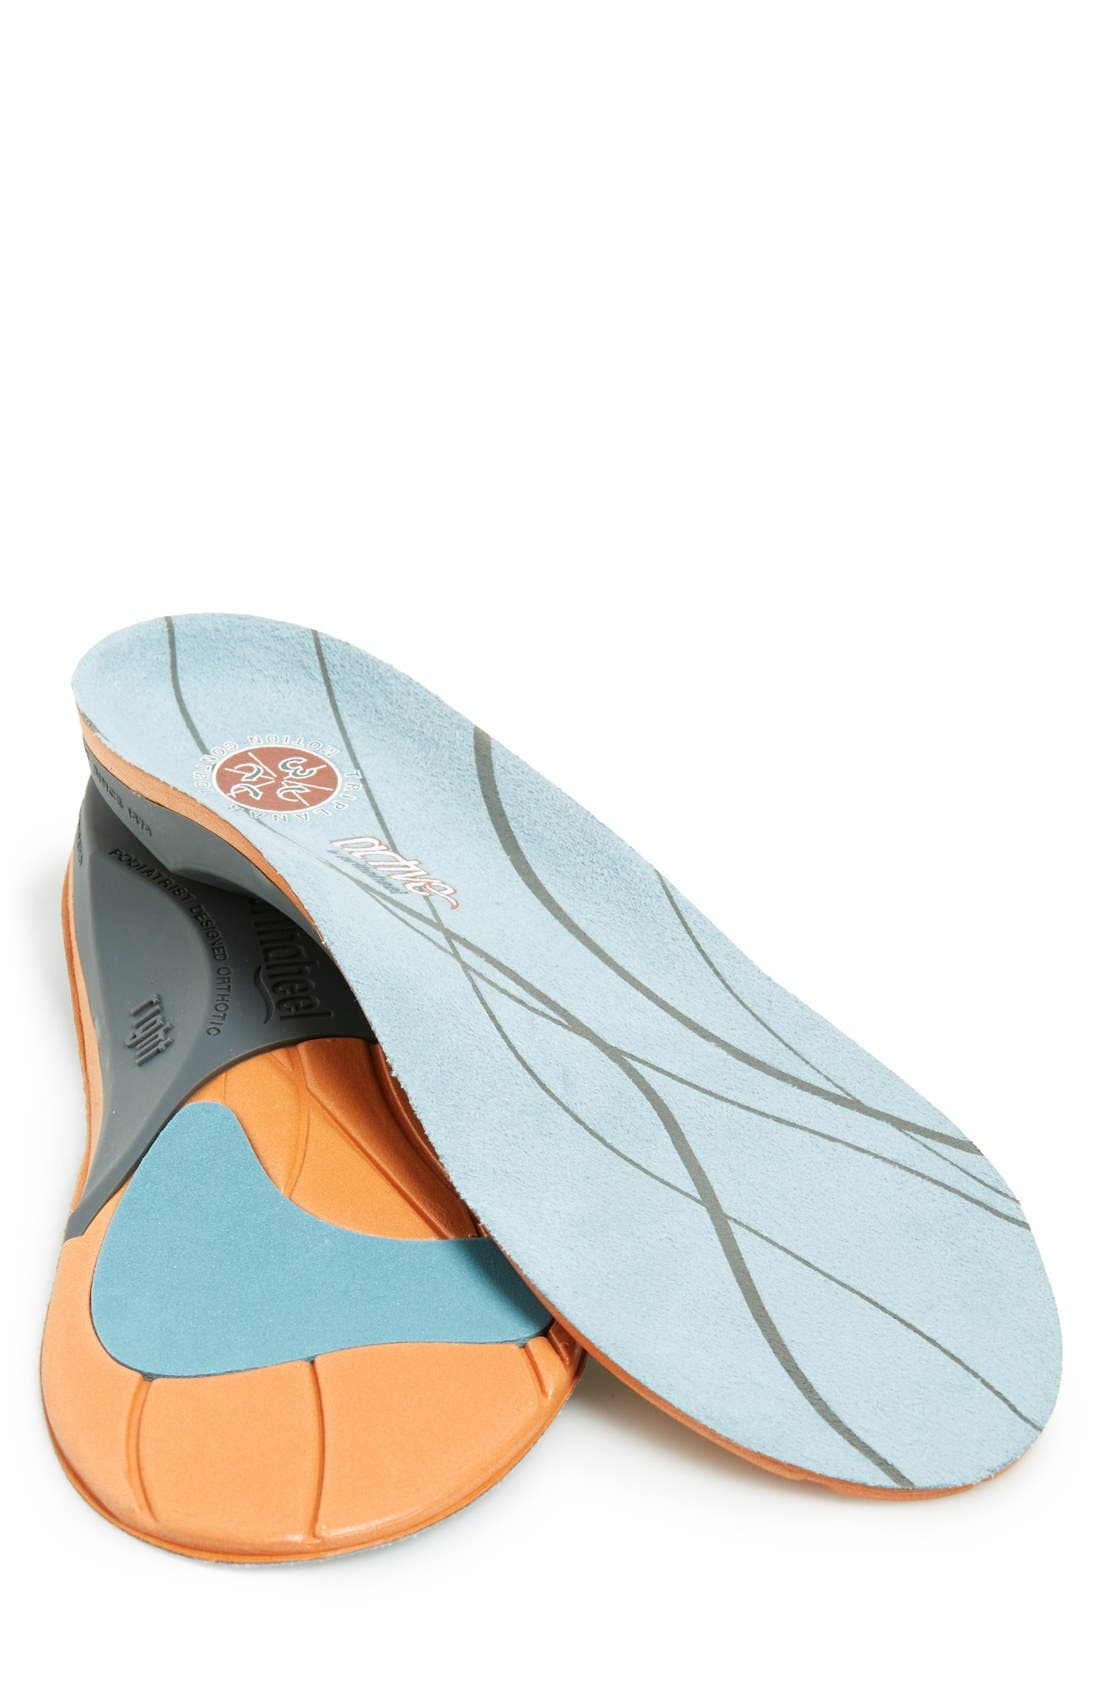 Alternate Image 1 Selected - Vionic 'Active' Full-Length Orthotic Insole (Women)